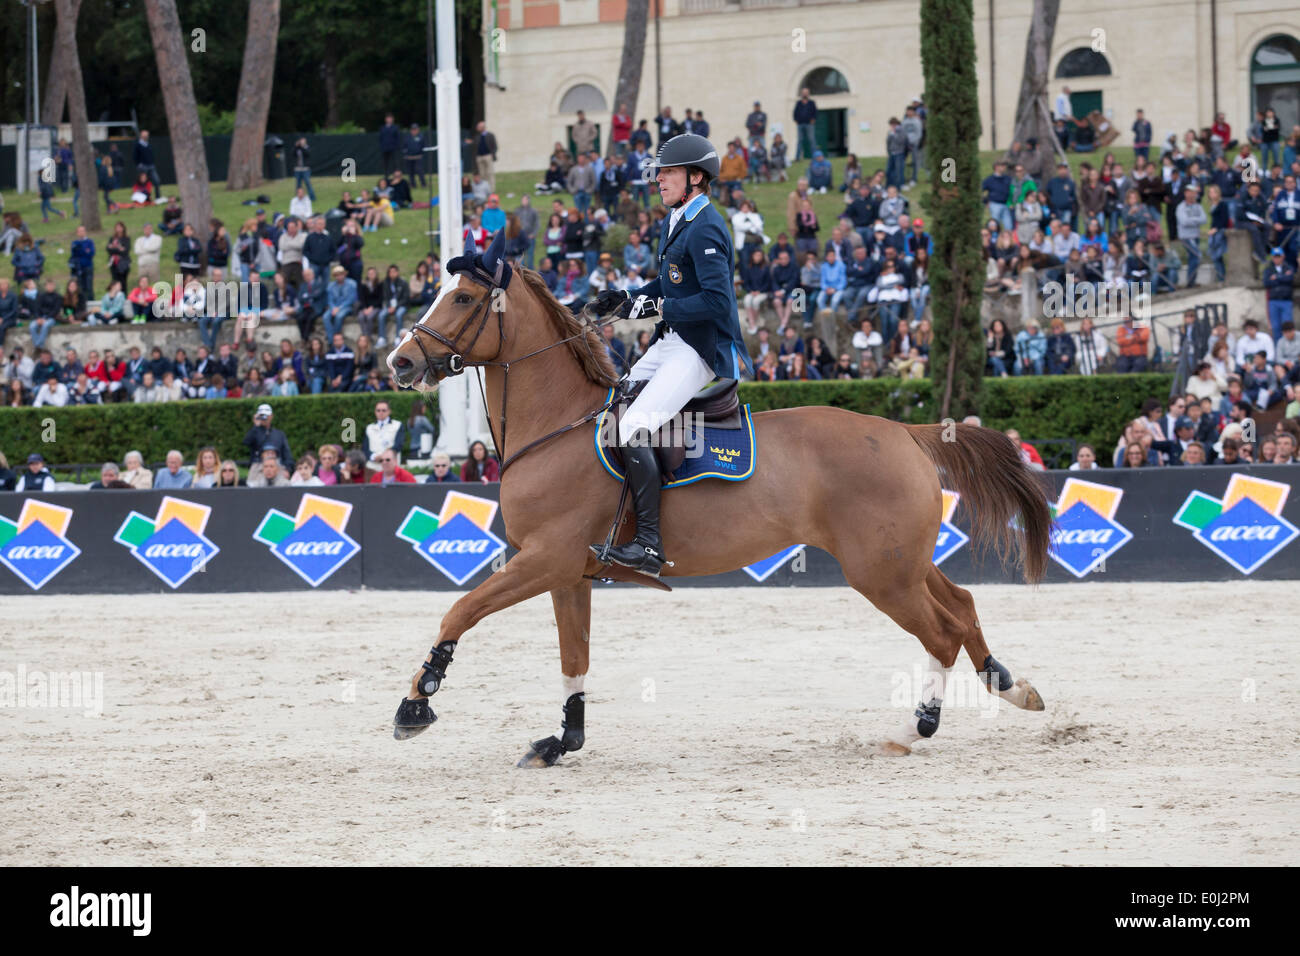 Peder Fredricson of Sweden competing in the Furusiyya FEI Nations Cup at the Piazza di Siena in Rome 2013 Stock Photo